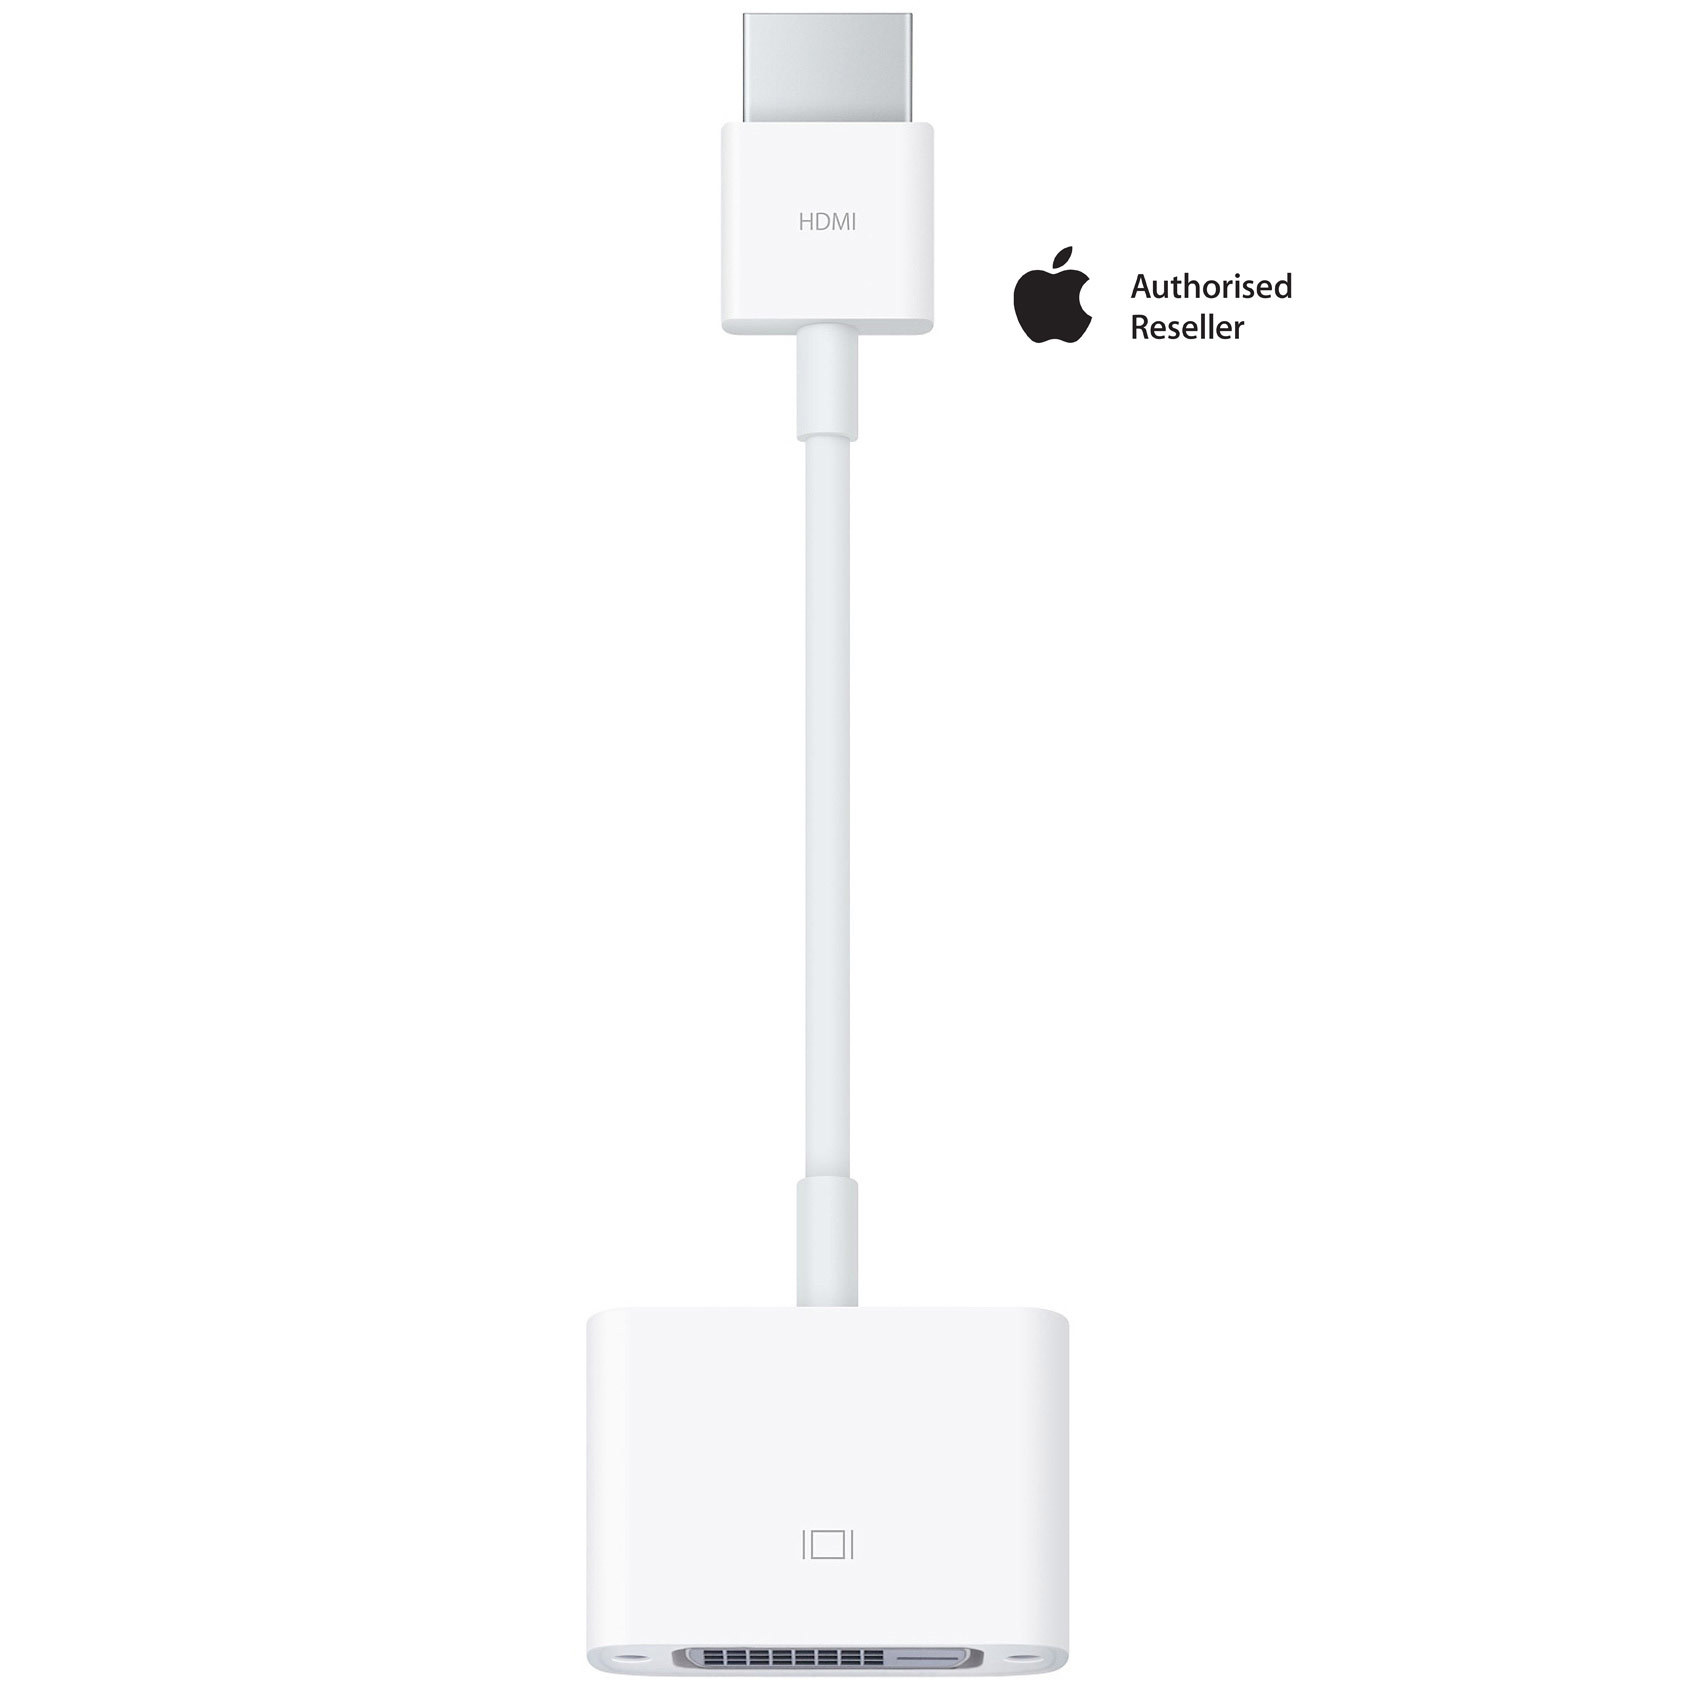 APPLE CABLE HDMI TO DVI ADAPTER